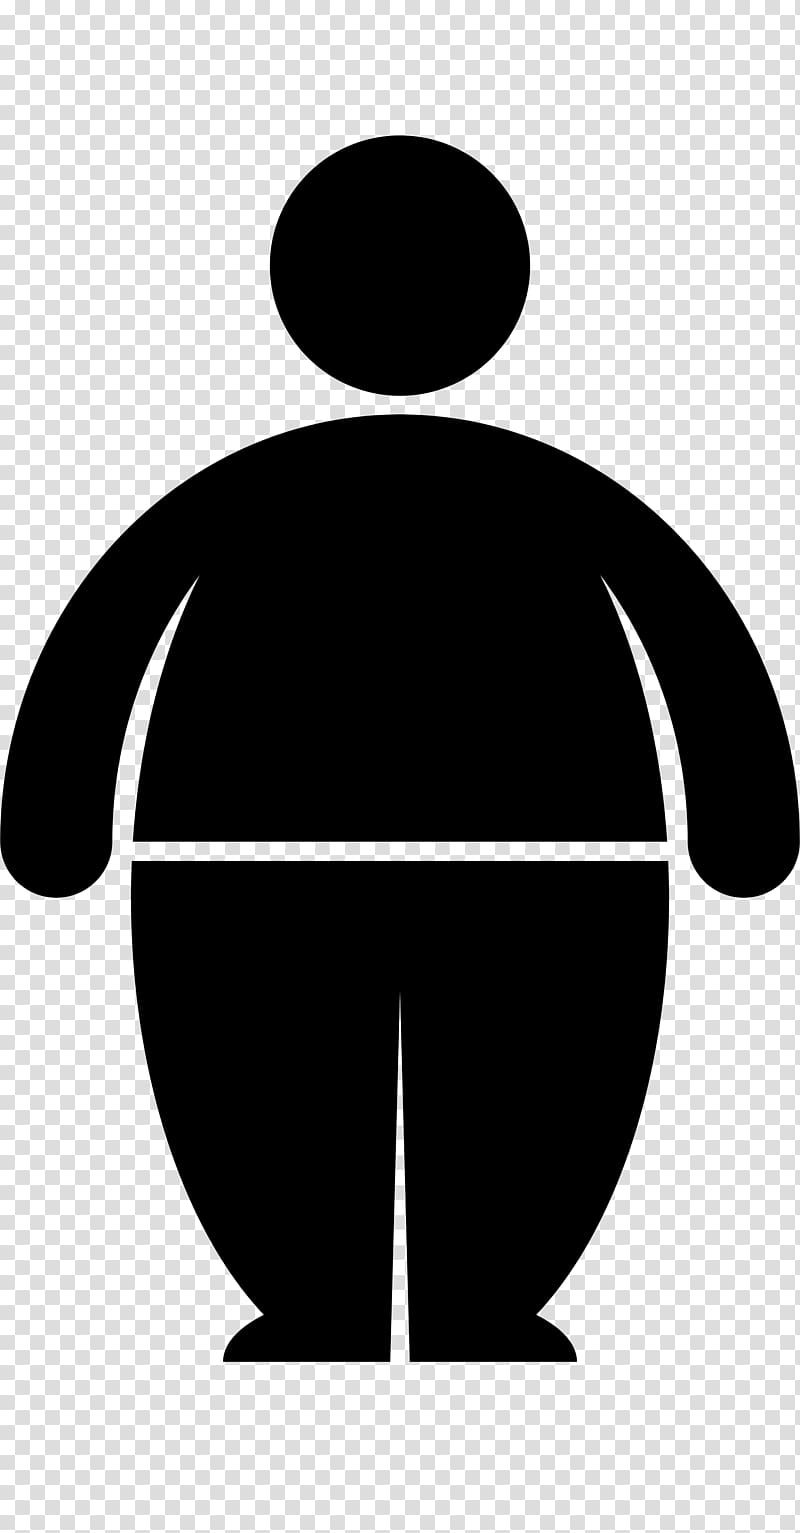 Ovebesity clipart jpg free Childhood obesity Overweight Computer Icons, fat man ... jpg free